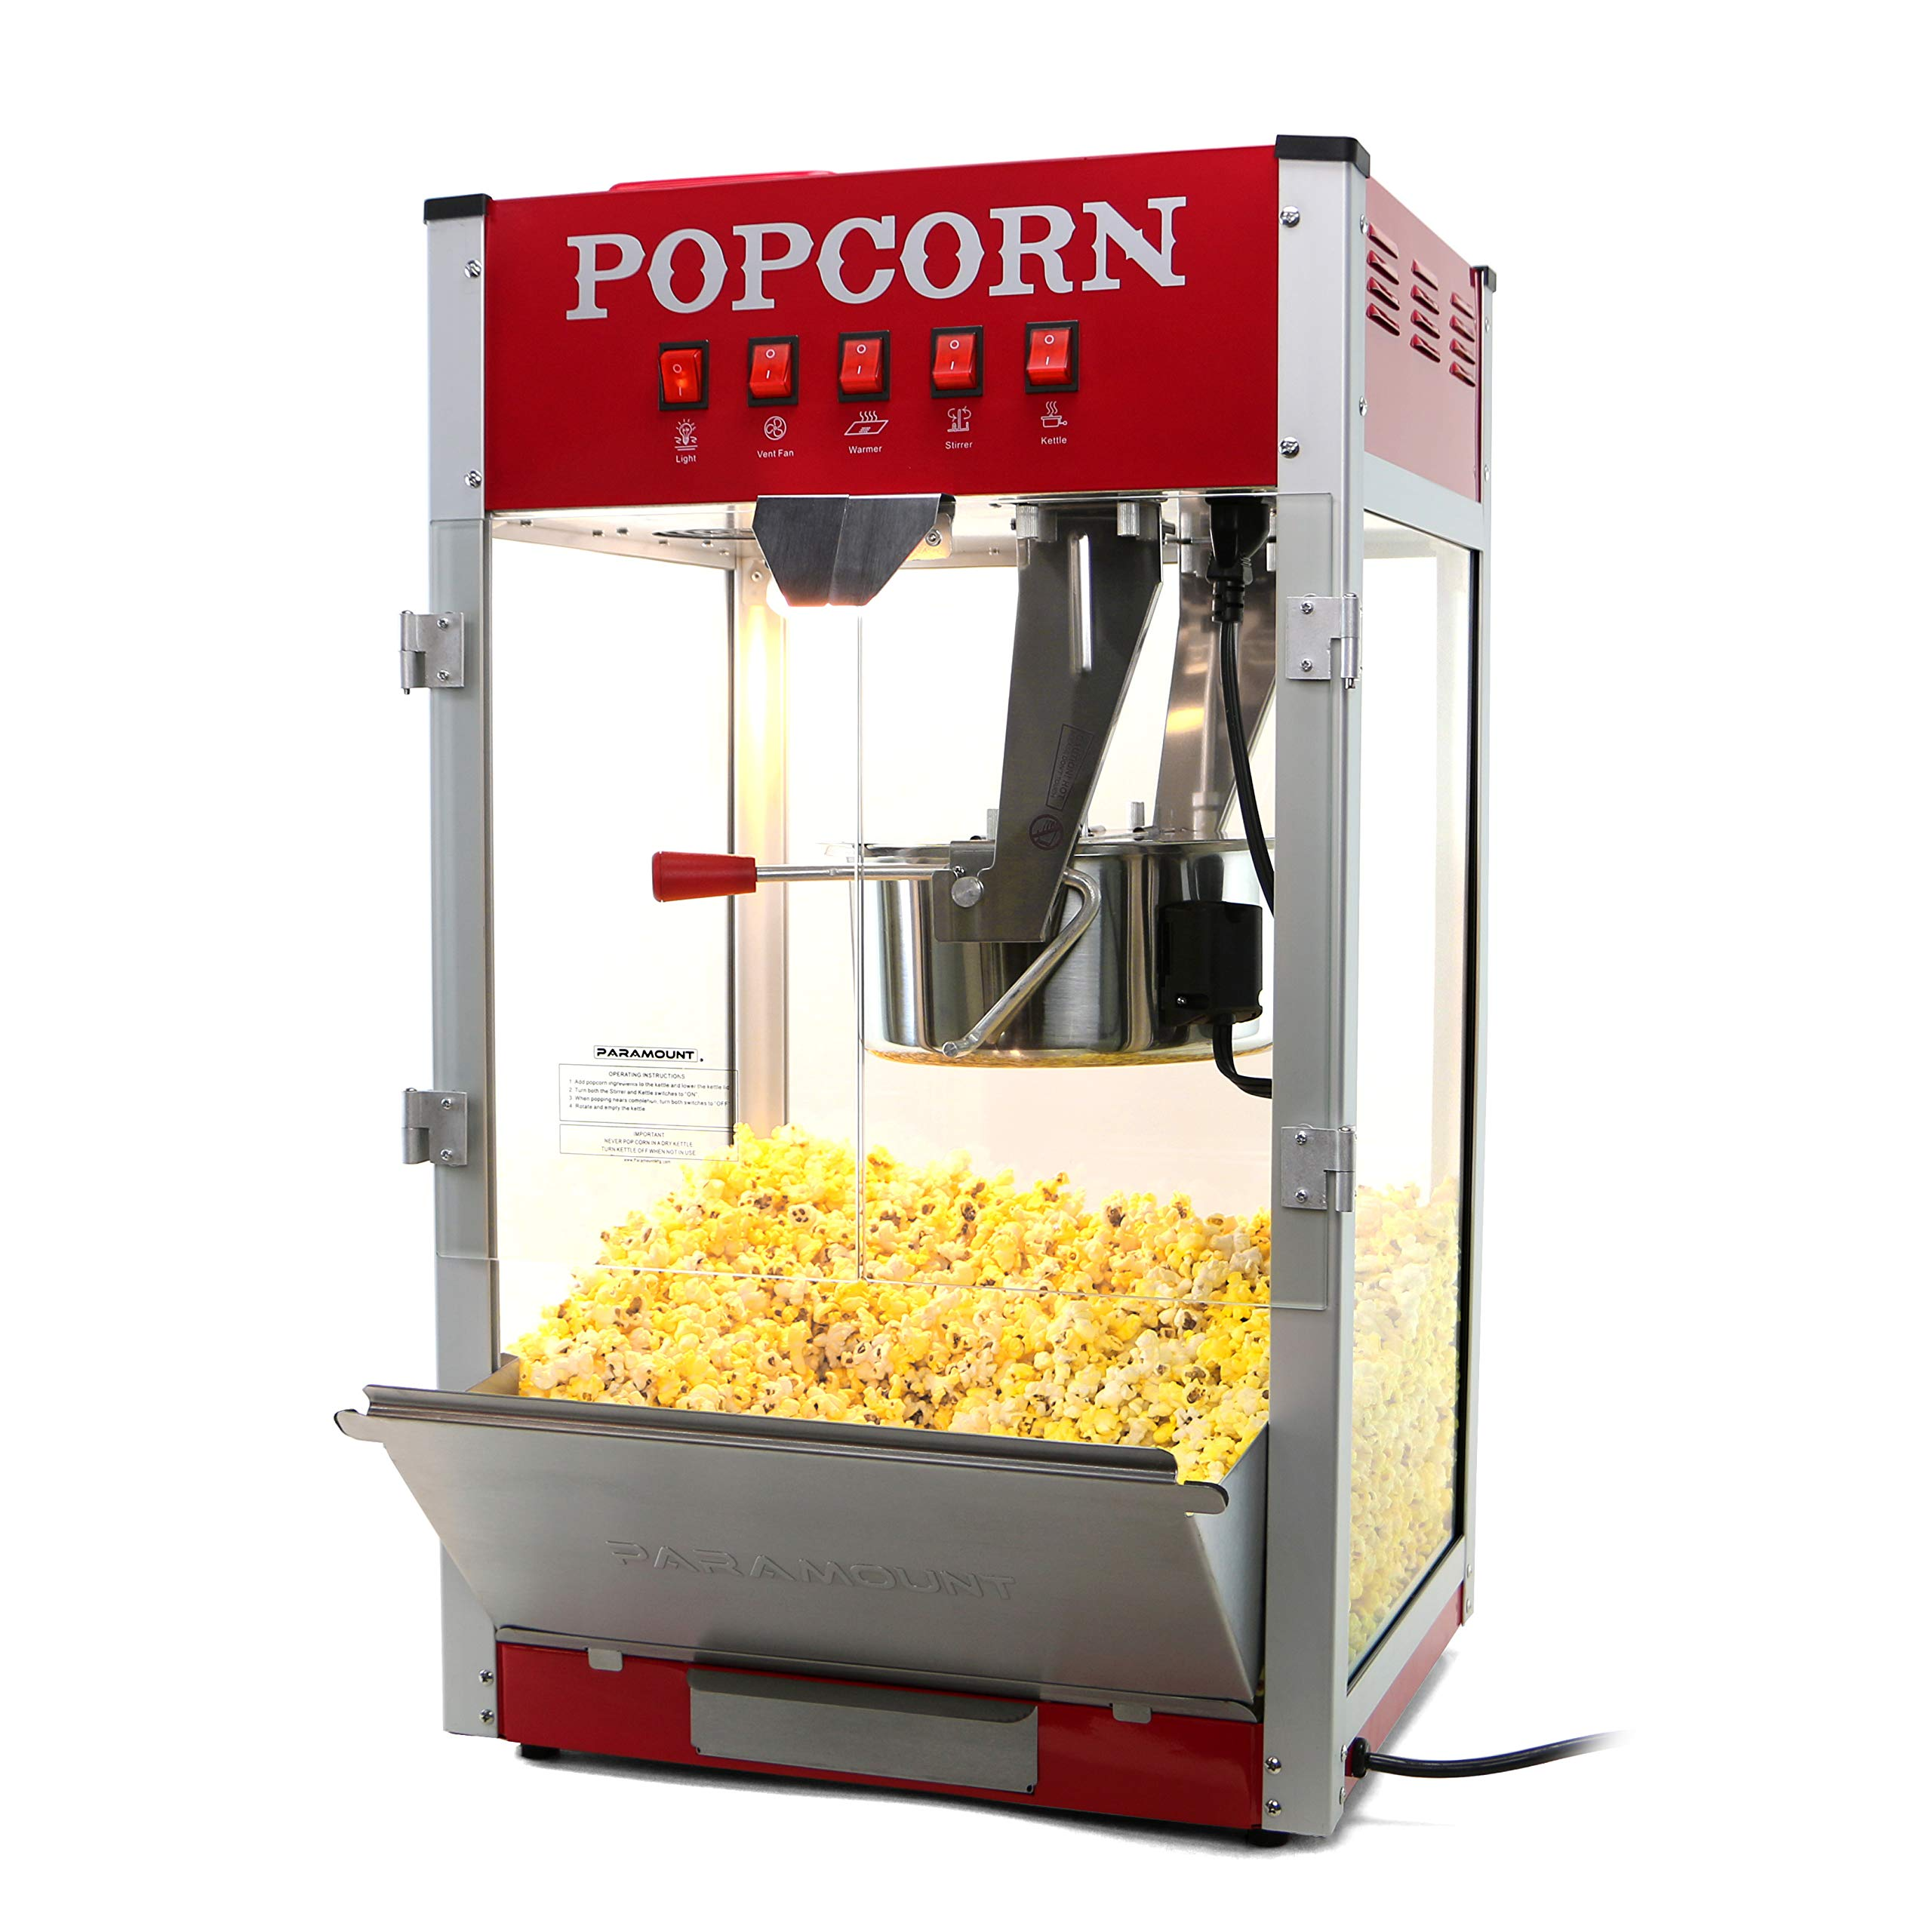 Paramount 16oz Popcorn Maker Machine - New 16 oz Hot Oil Commercial Popper [Color: Red] by Paramount